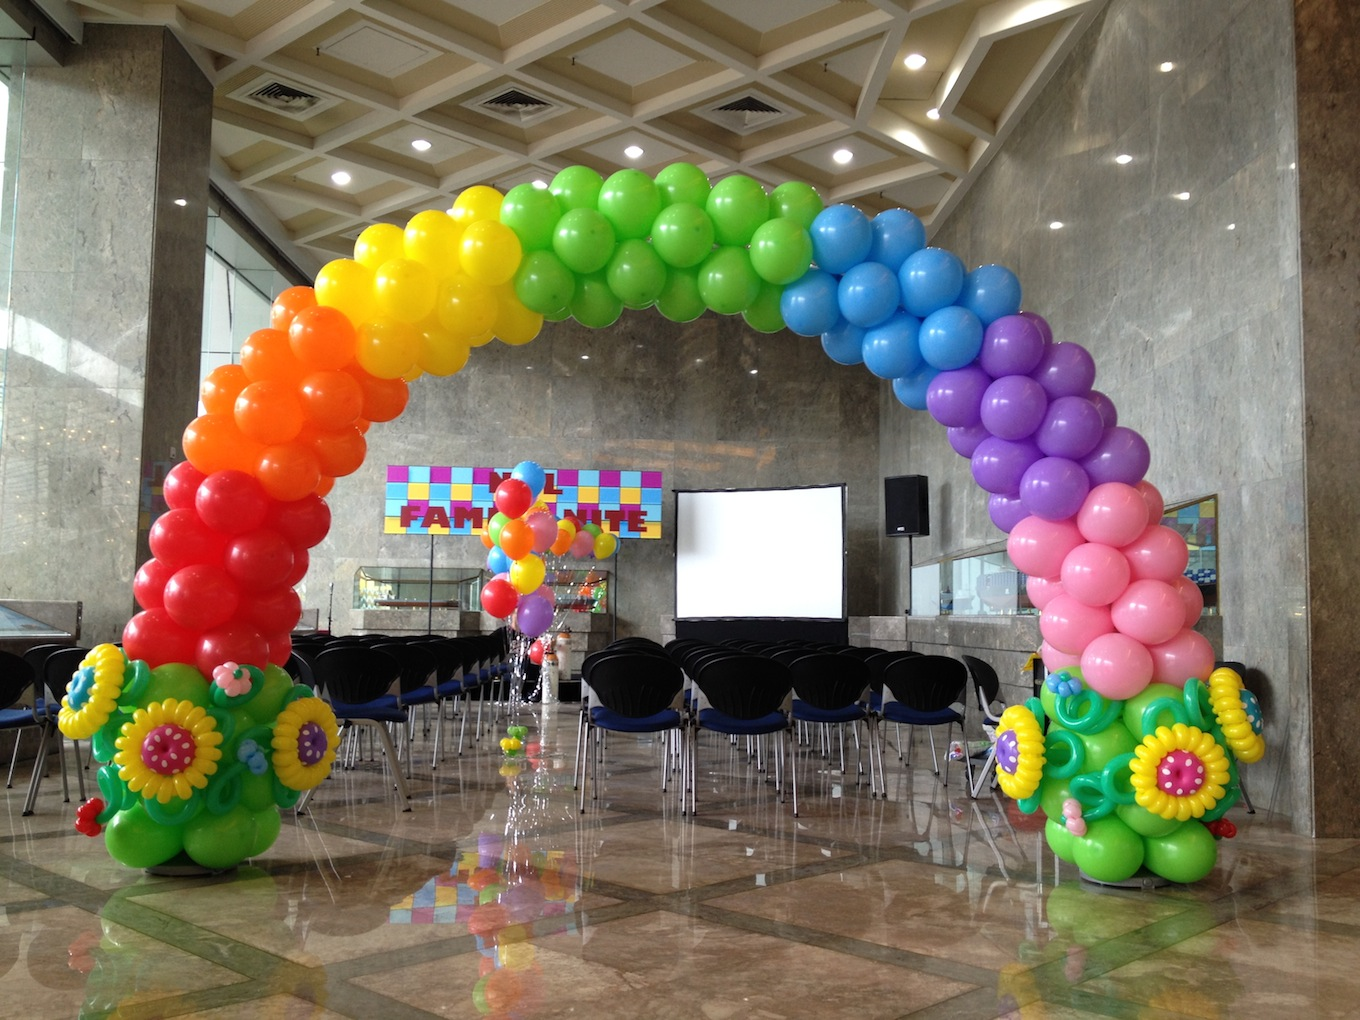 Balloon decoration ideas that balloons for Ballon decoration